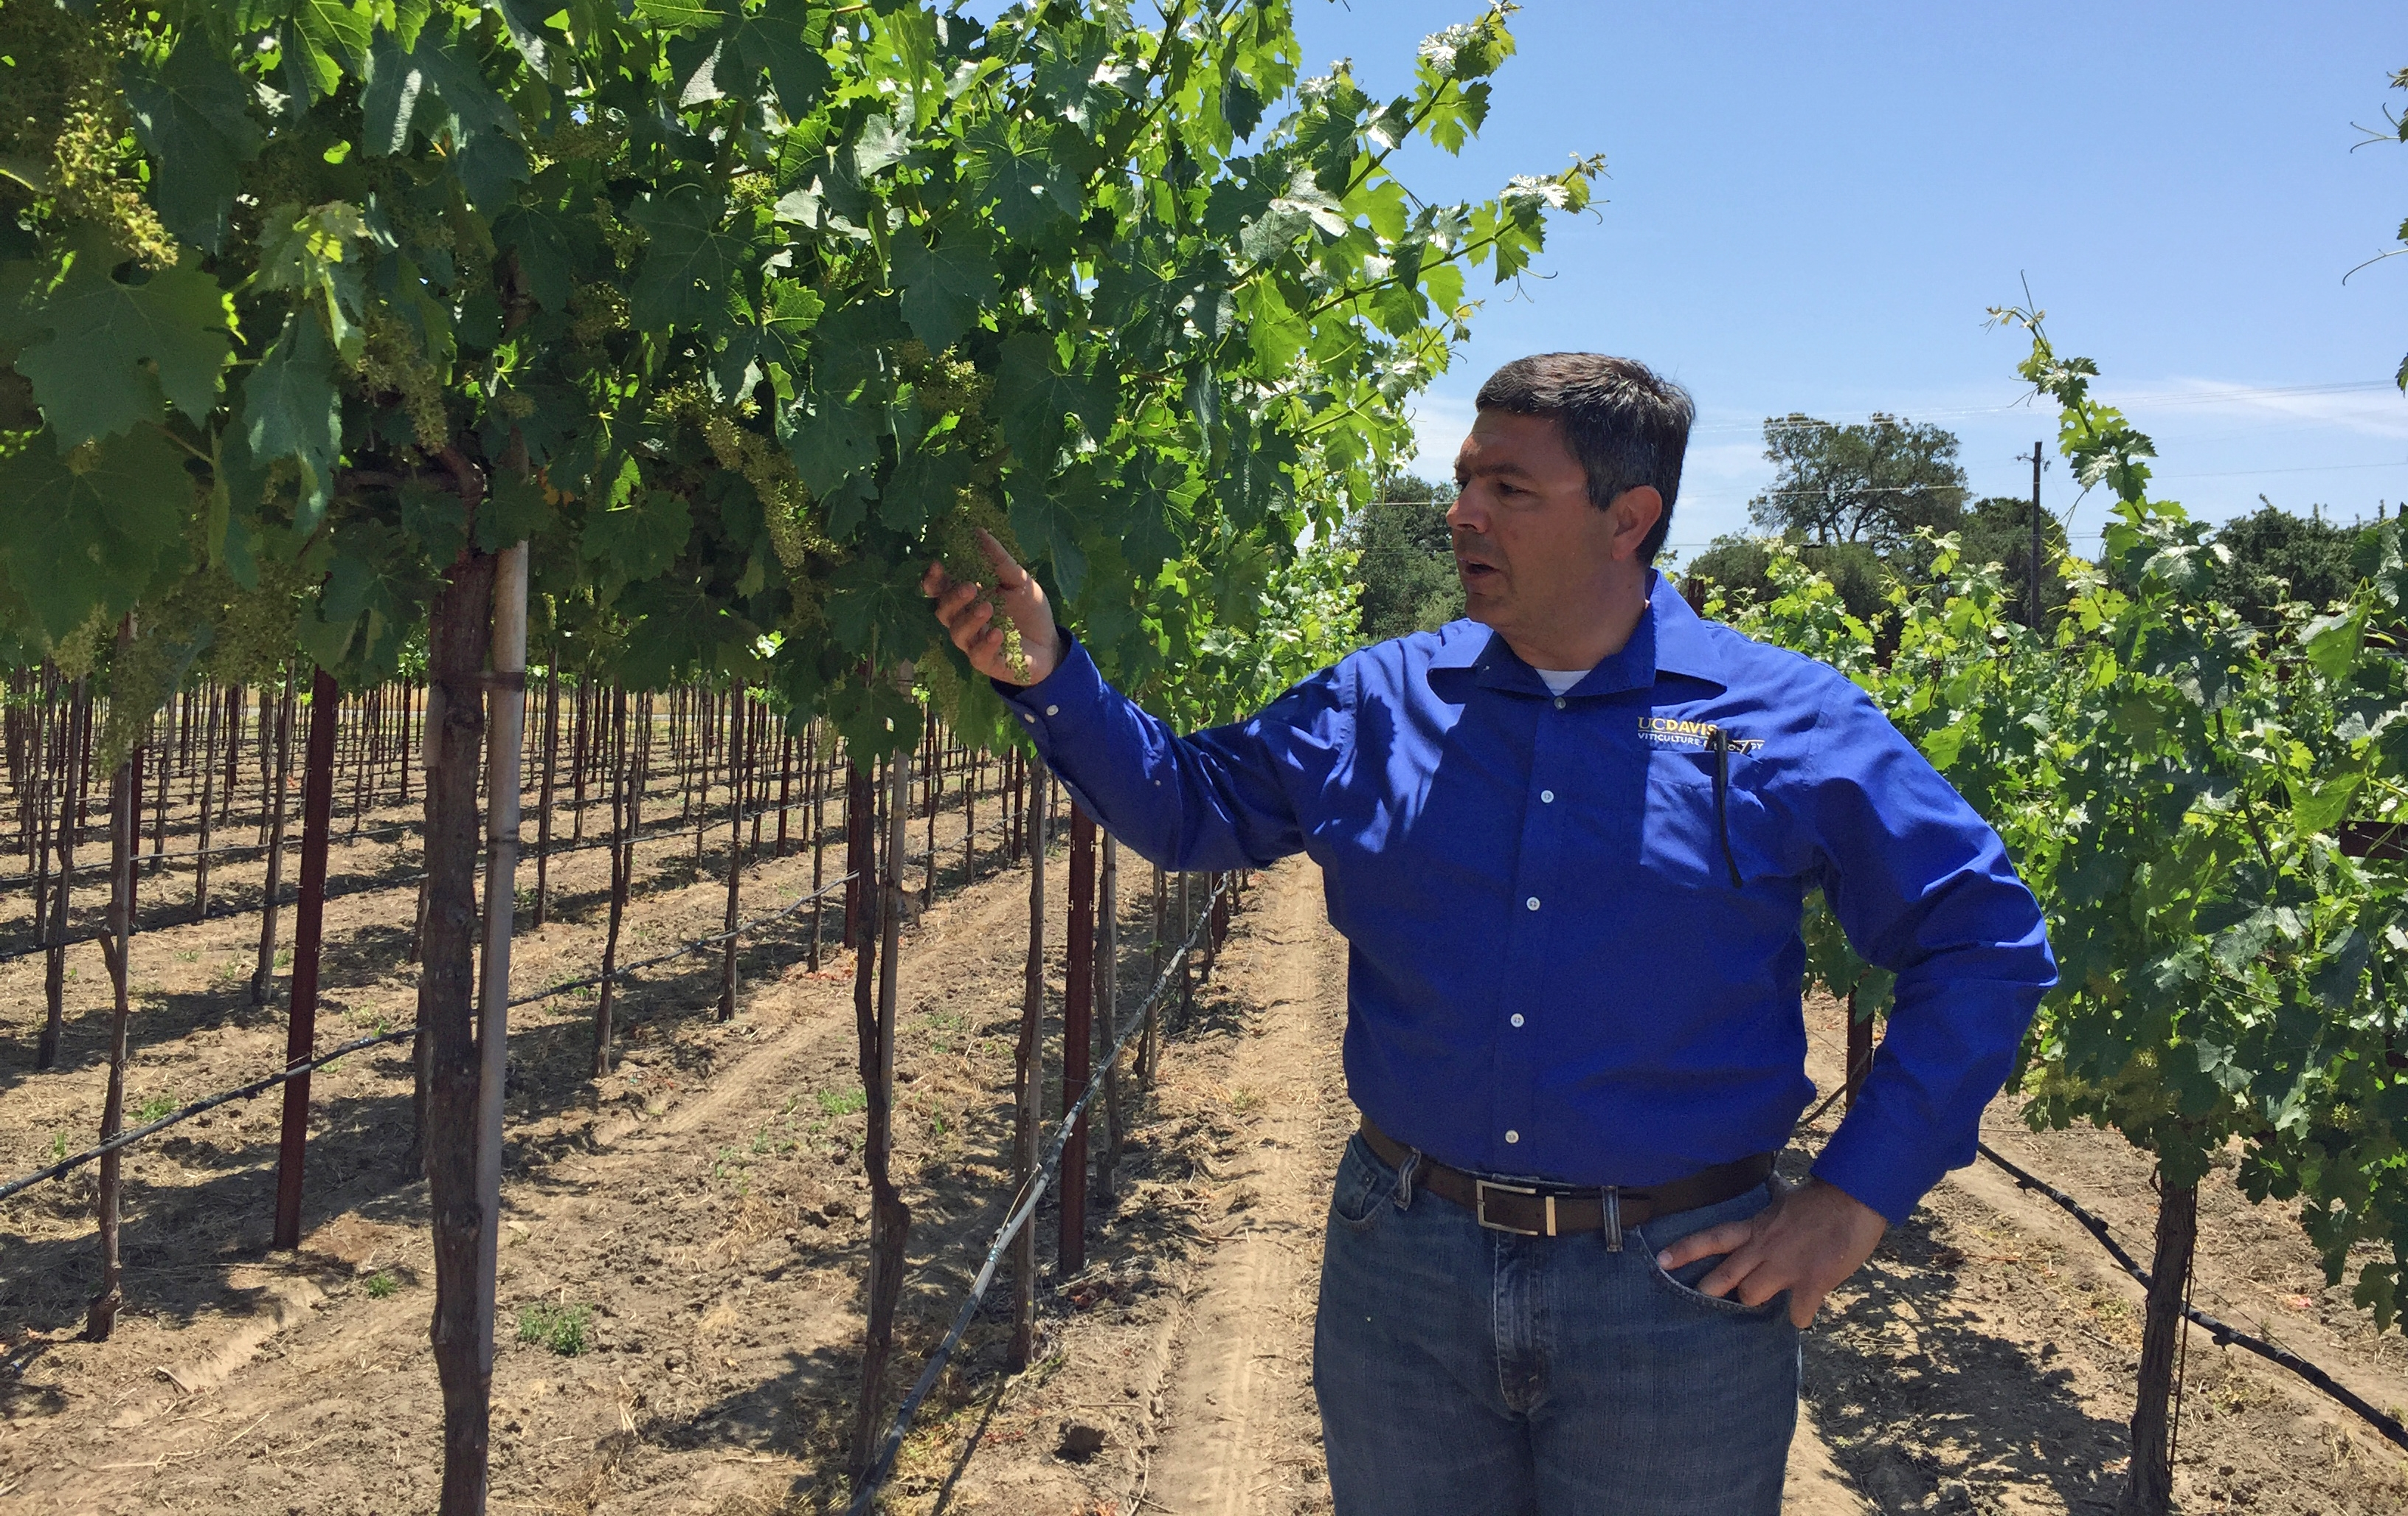 Growers Get Labor Saving Ideas At Uc Grape Day